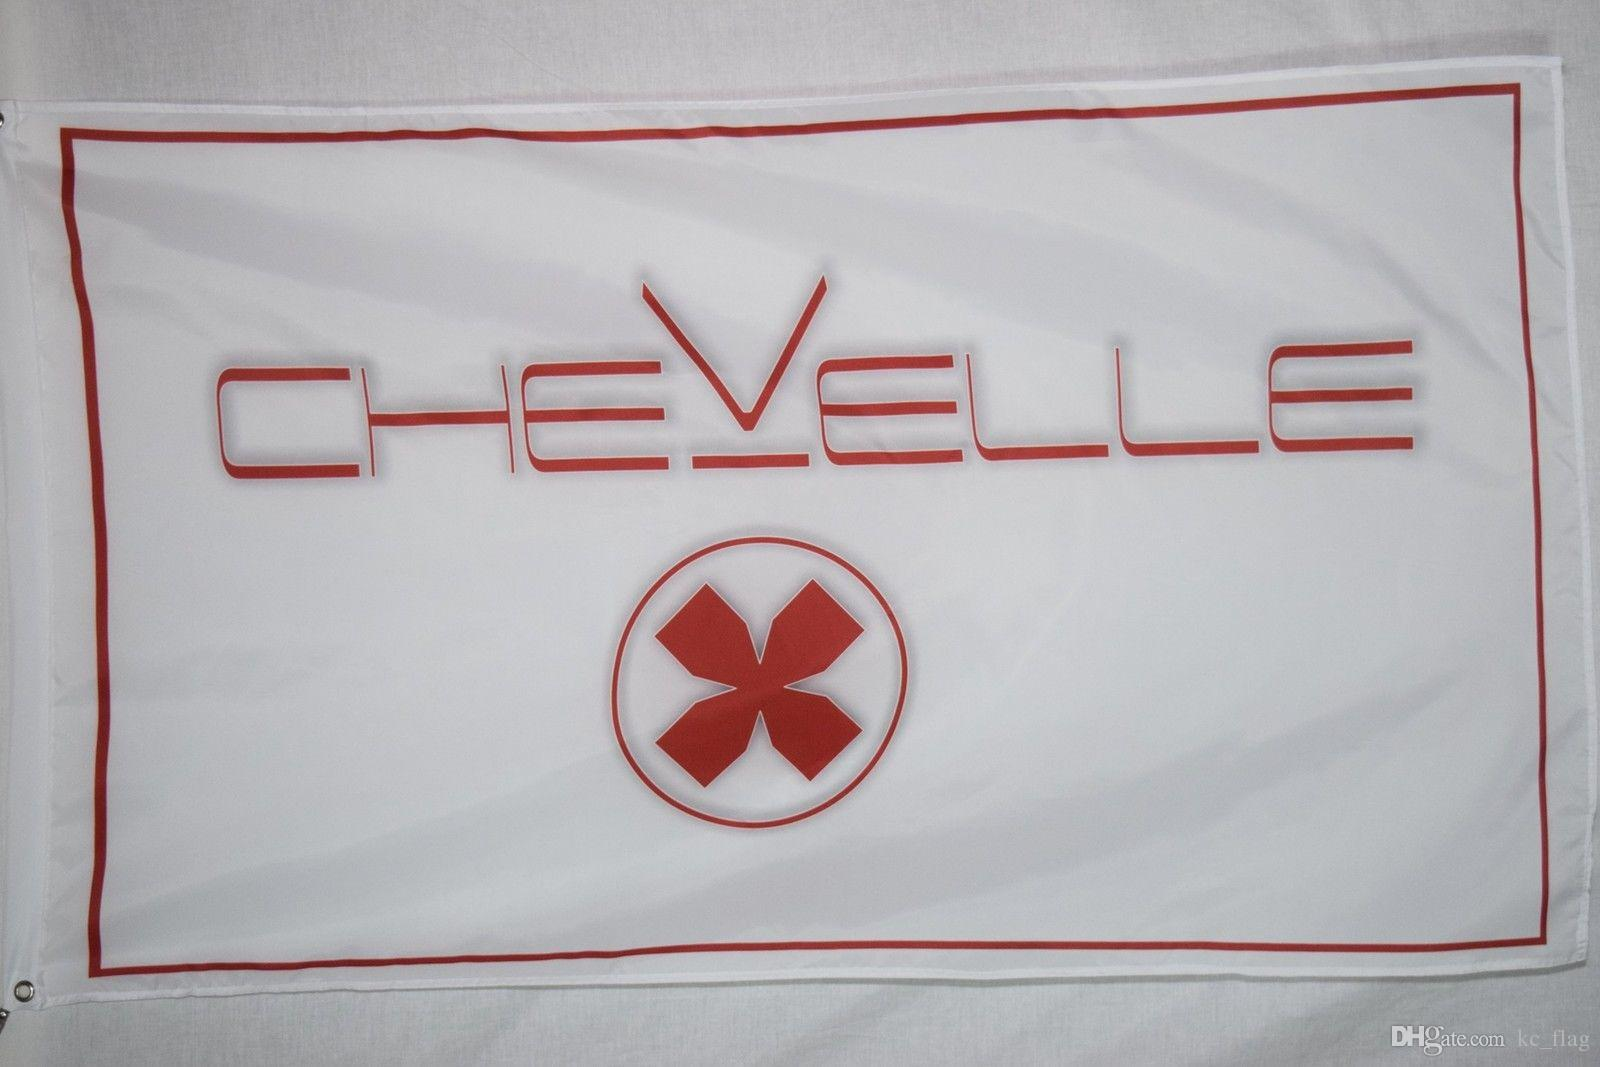 Chevelle Band Advertising Promotional Flag Banner 3X5